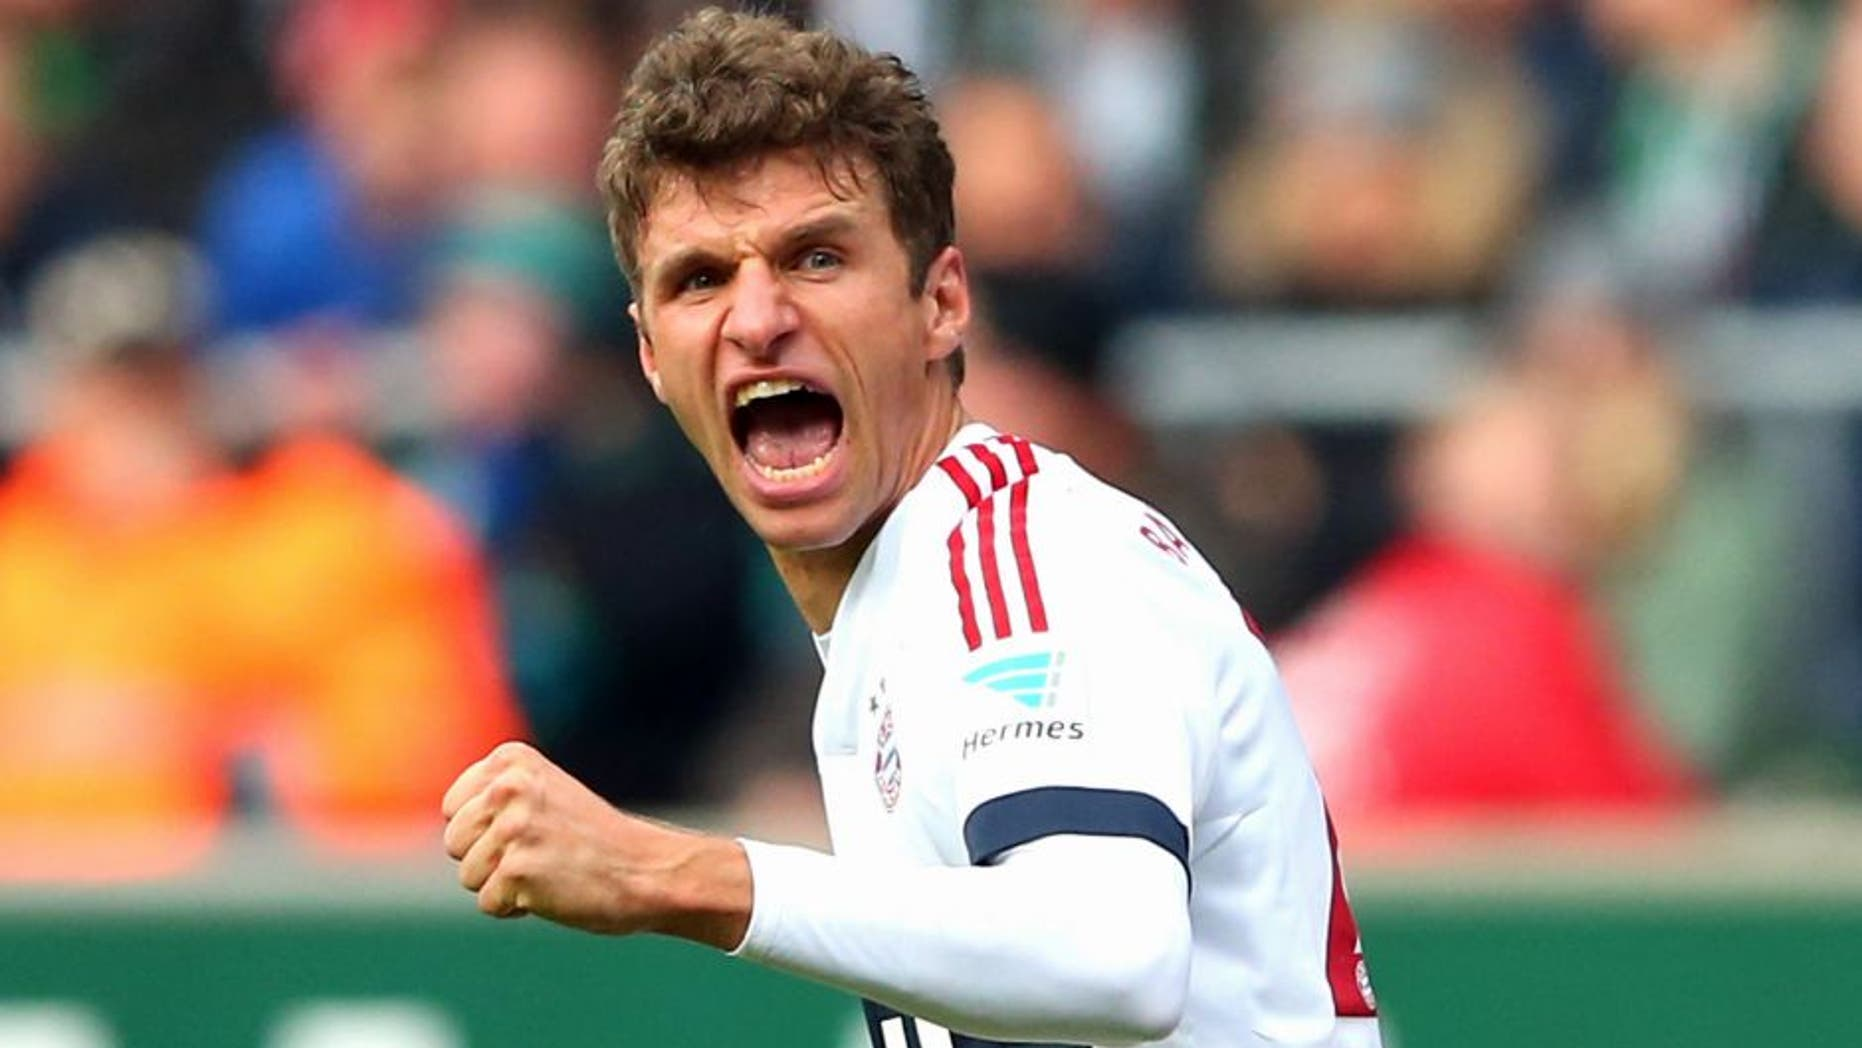 BREMEN, GERMANY - OCTOBER 17: Thomas Mueller of Muenchen celebrates scoring the opening goal during the Bundesliga match between SV Werder Bremen and FC Bayern Muenchen at Weserstadion on October 17, 2015 in Bremen, Germany. (Photo by Alexander Hassenstein/Bongarts/Getty Images)